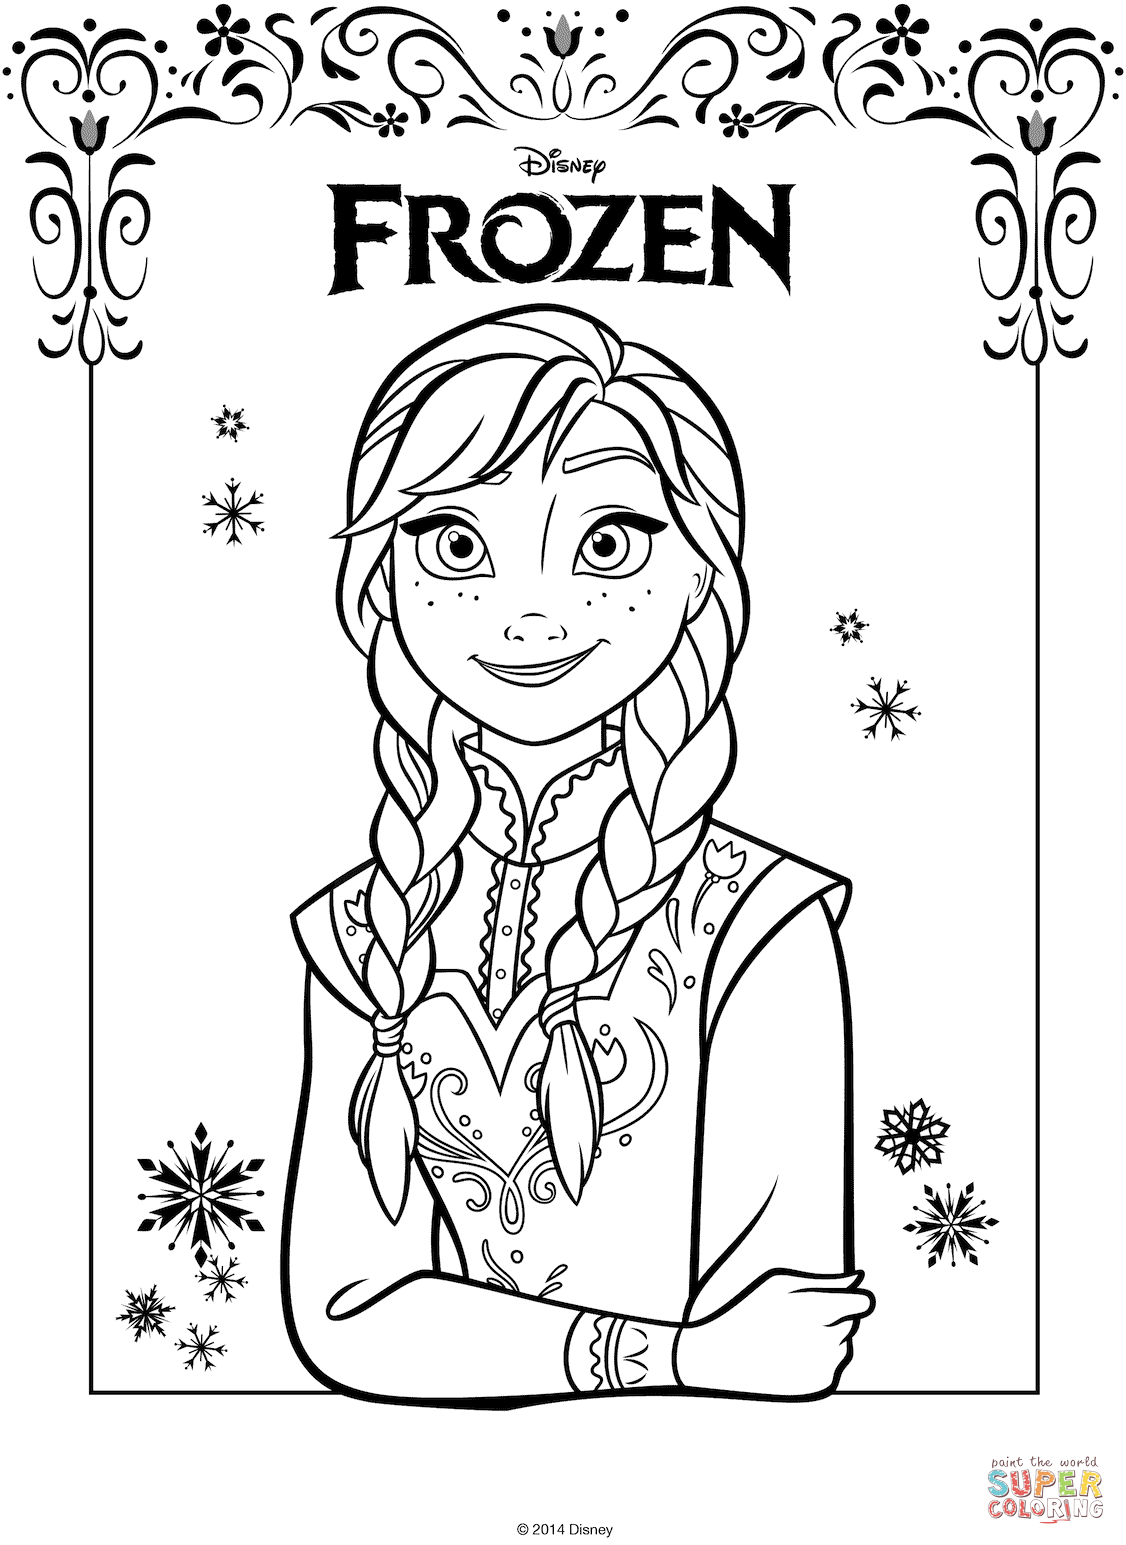 frozen movie coloring pages logo and main characters frozen coloring pages for children frozen coloring pages movie